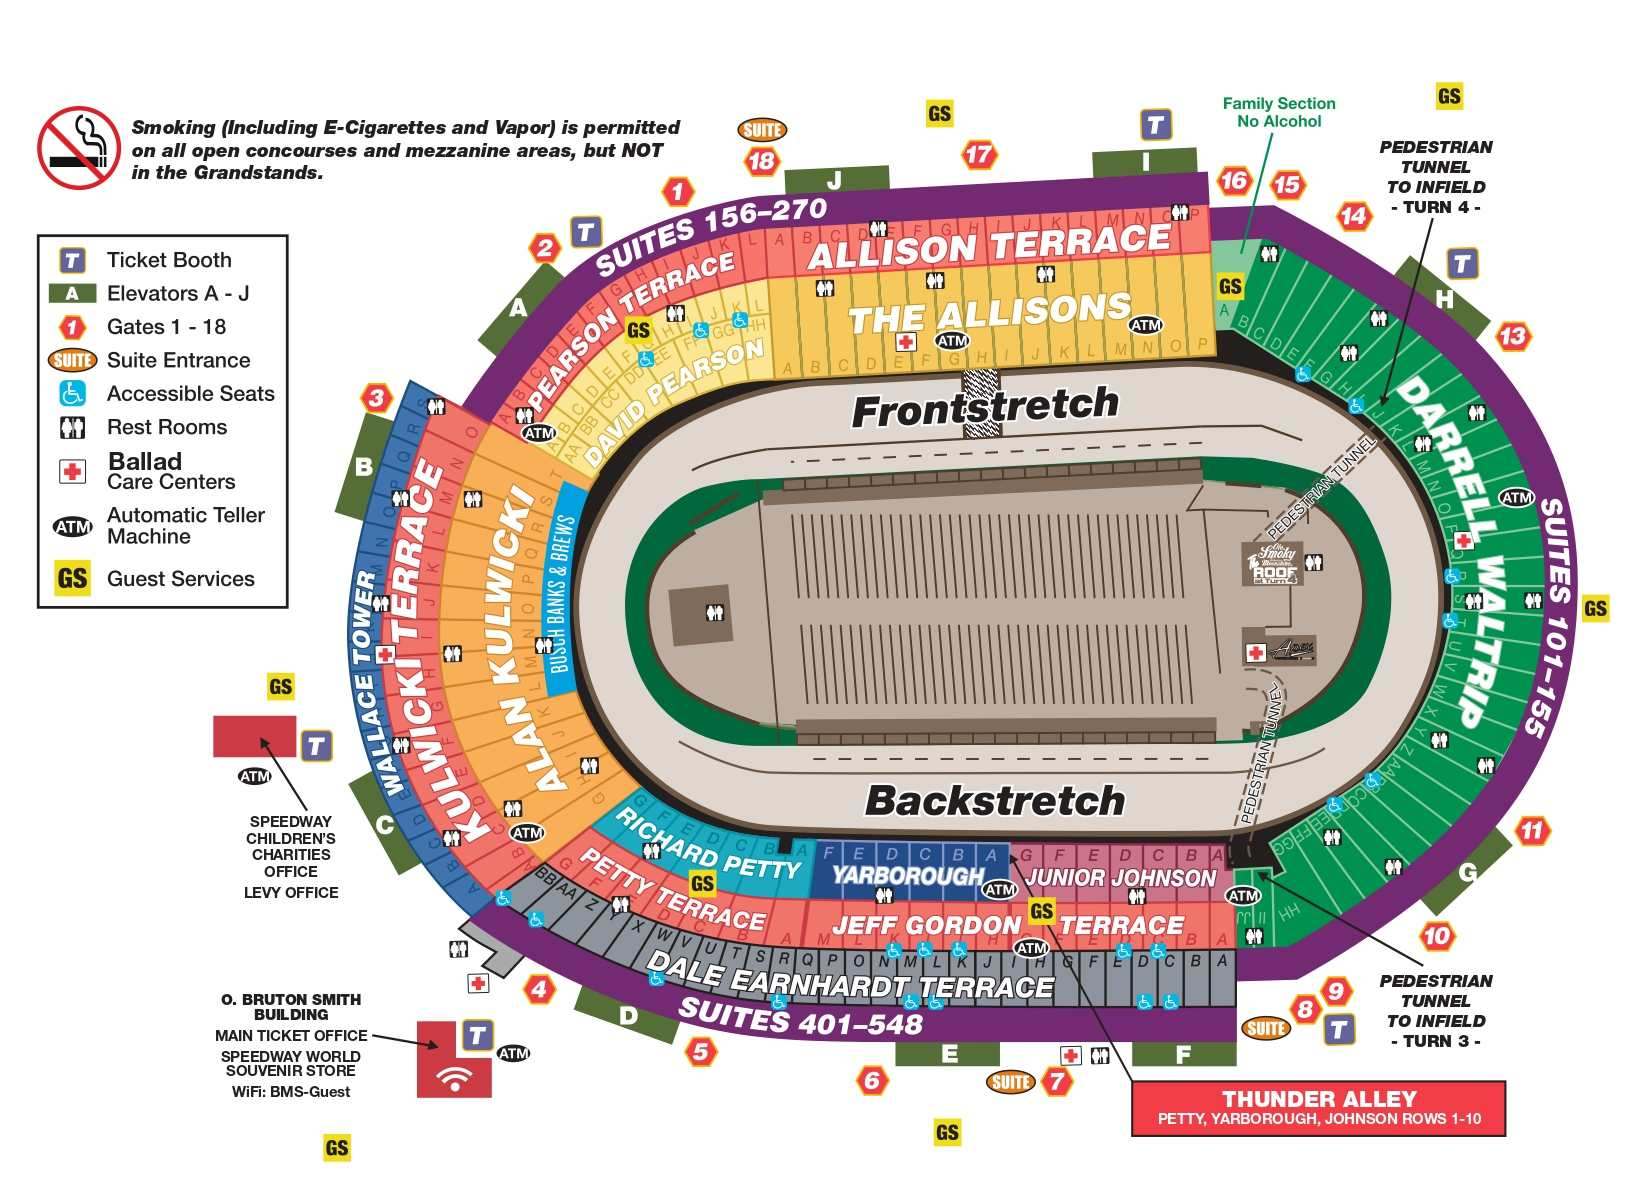 Bristol Motor Speedway Seating Chart with Row Numbers, ticket booth, elevators, entry gates, suites, rest rooms, ballad, ATM, guest services, start-finish line, alcohol zone, grandstand